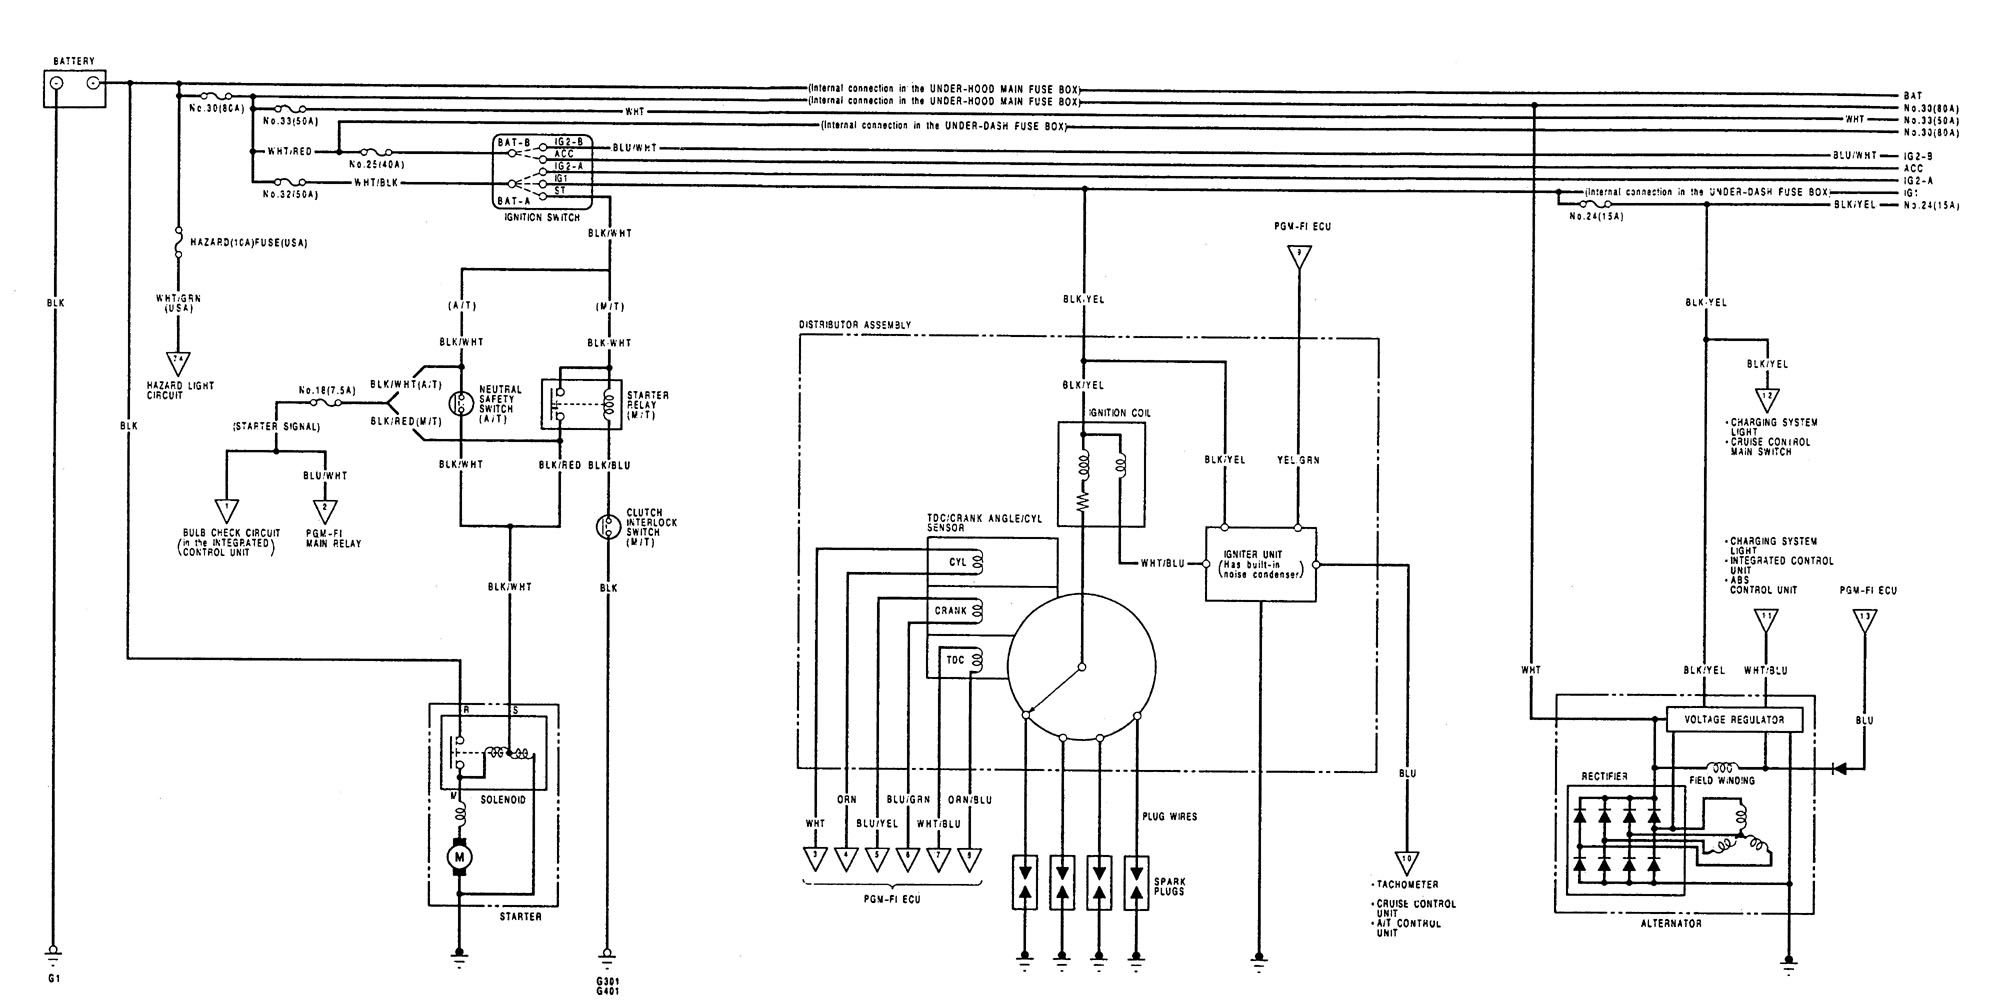 Acura Integra (1992 - 1993) - wiring diagrams - starting - Carknowledge.infoCarknowledge.info